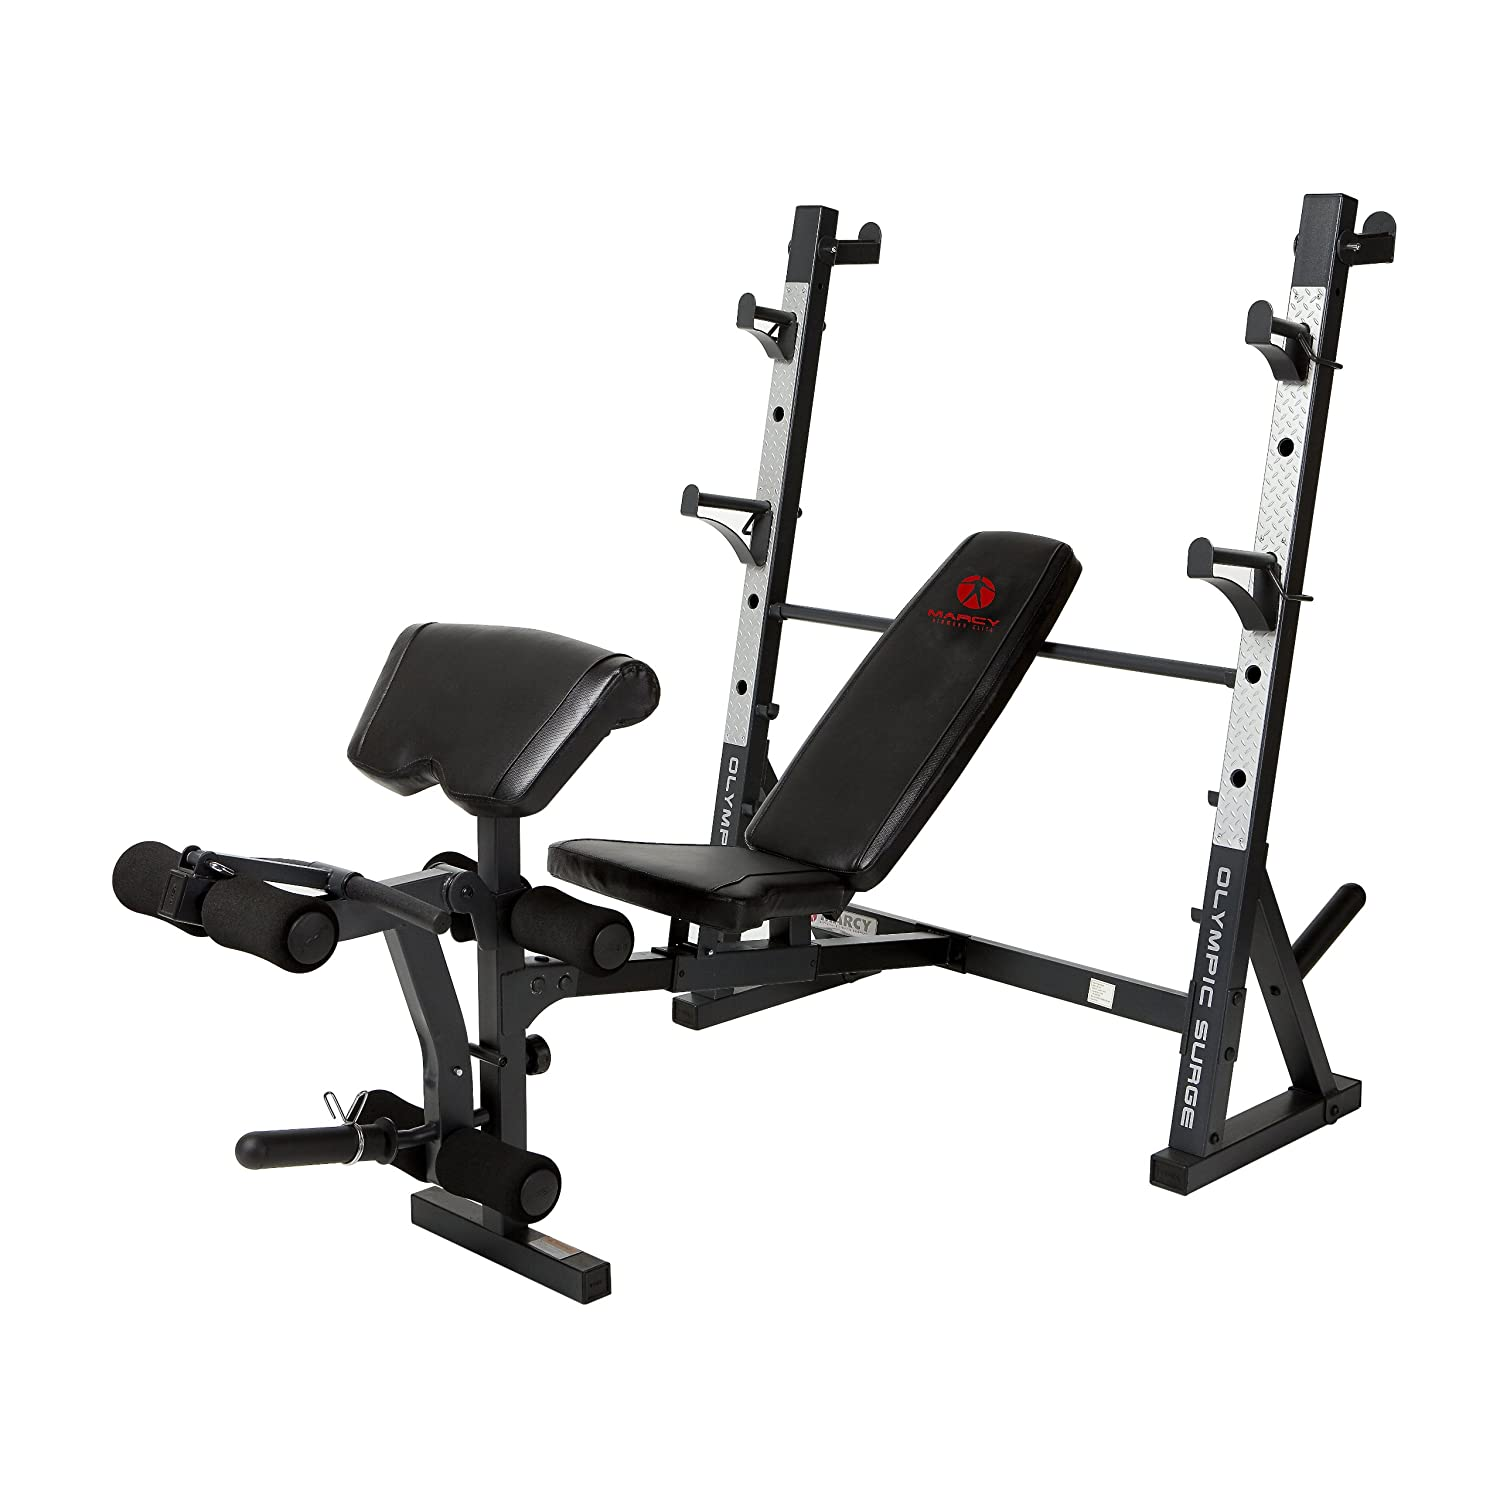 Recommend A Good Bench That Has Safety Bars For Bench